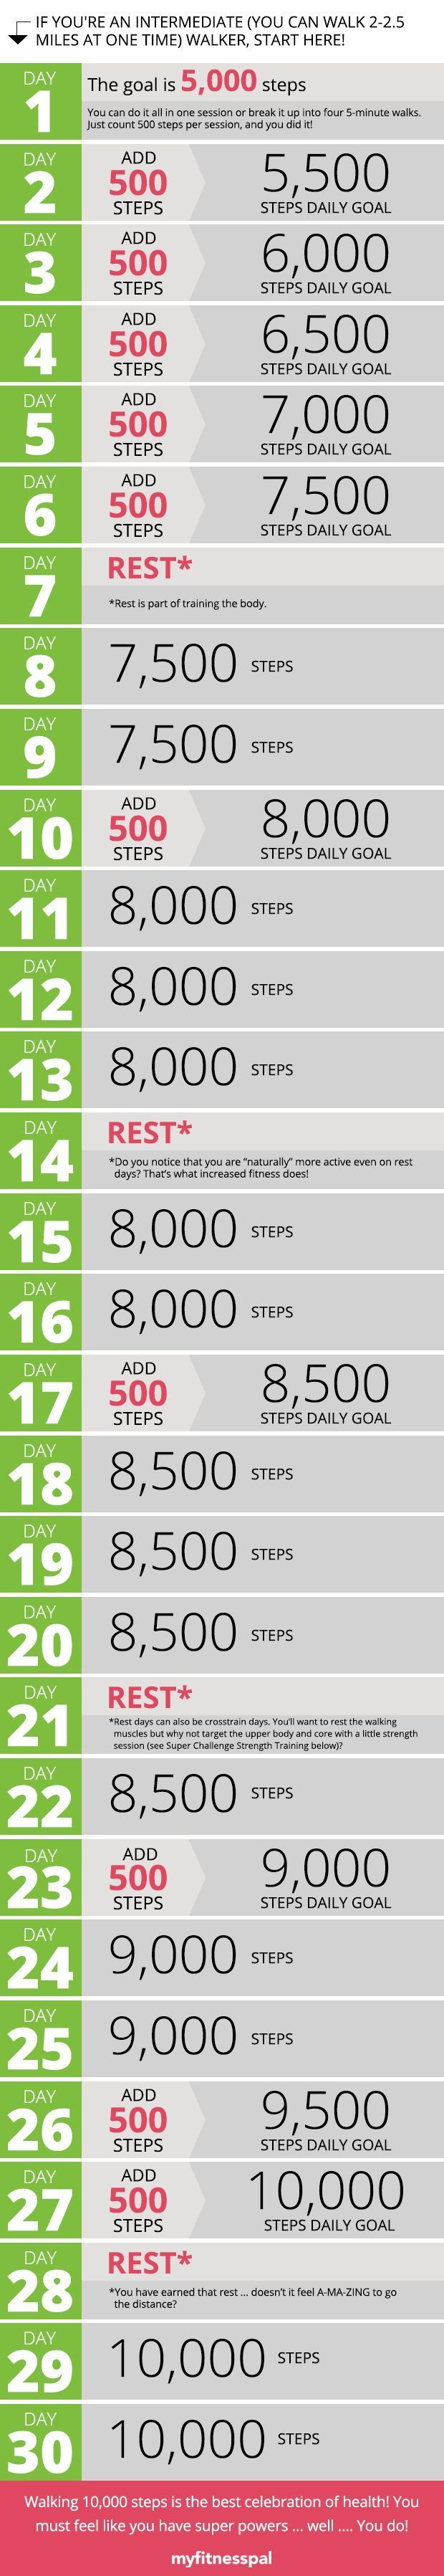 Walking For Weight Loss: The Ultimate 1poundperweek Plan